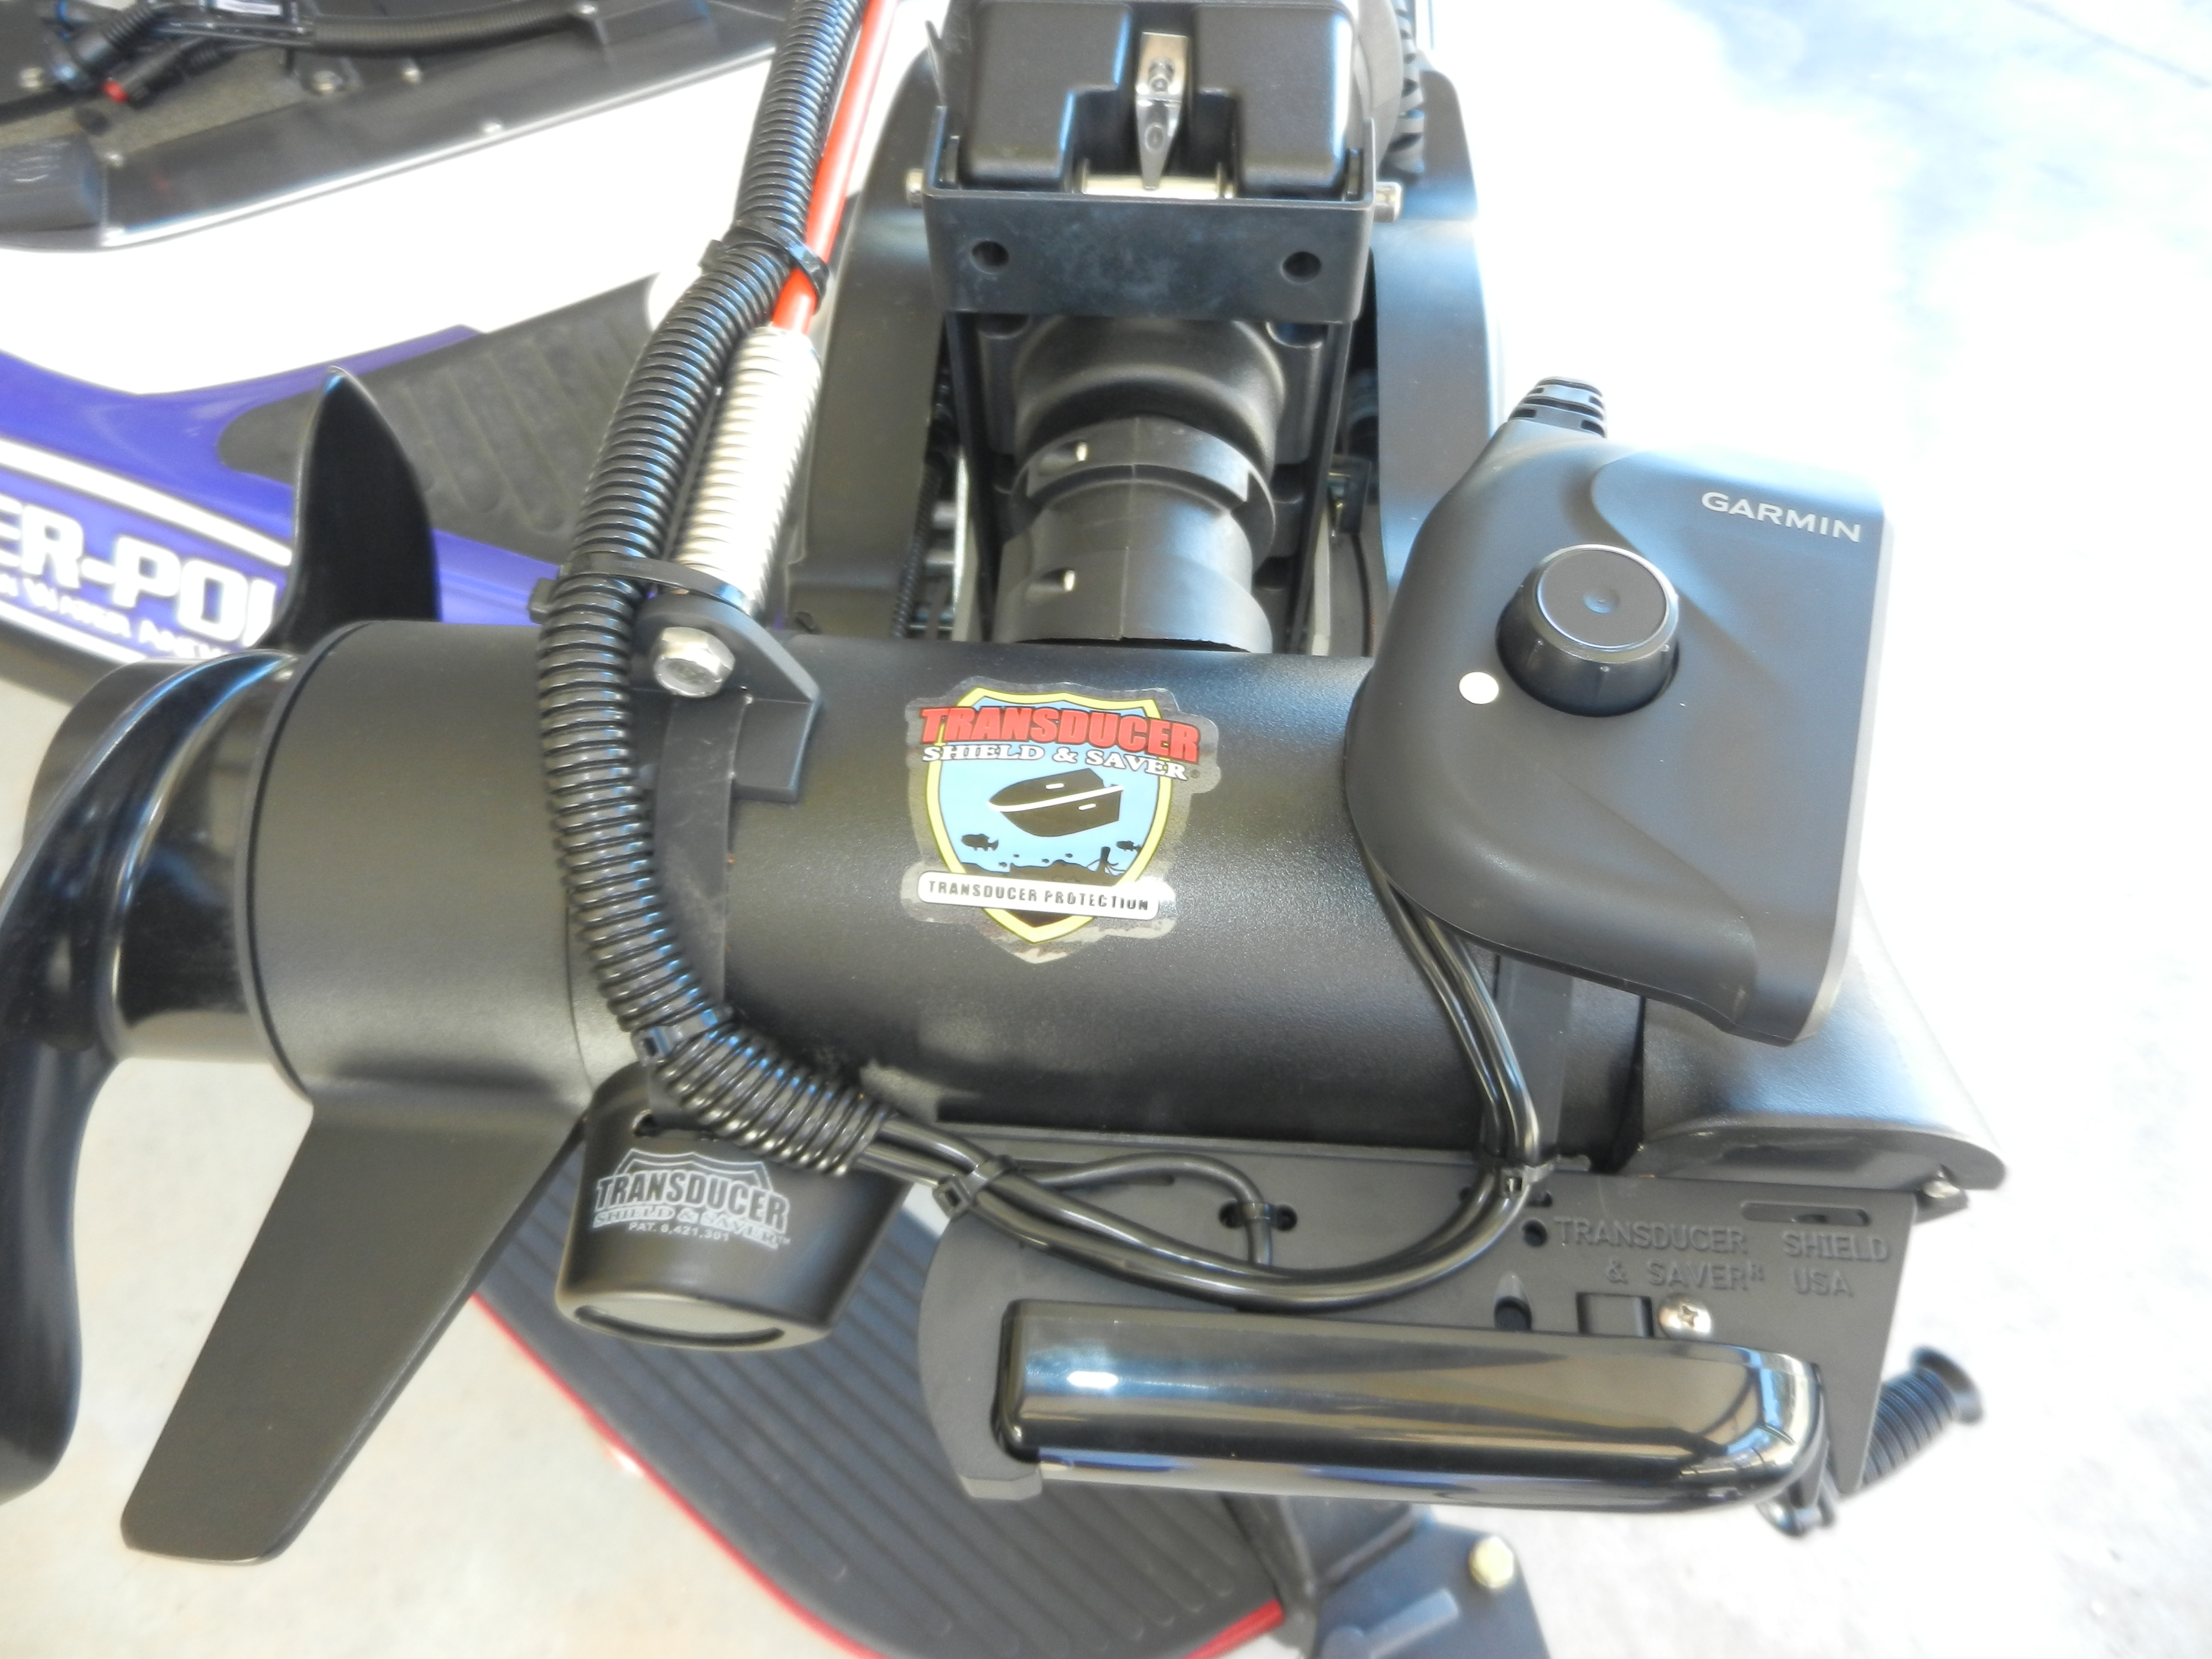 Transducer shield and saver cable guiding tower great for for Lowrance trolling motor transducer installation